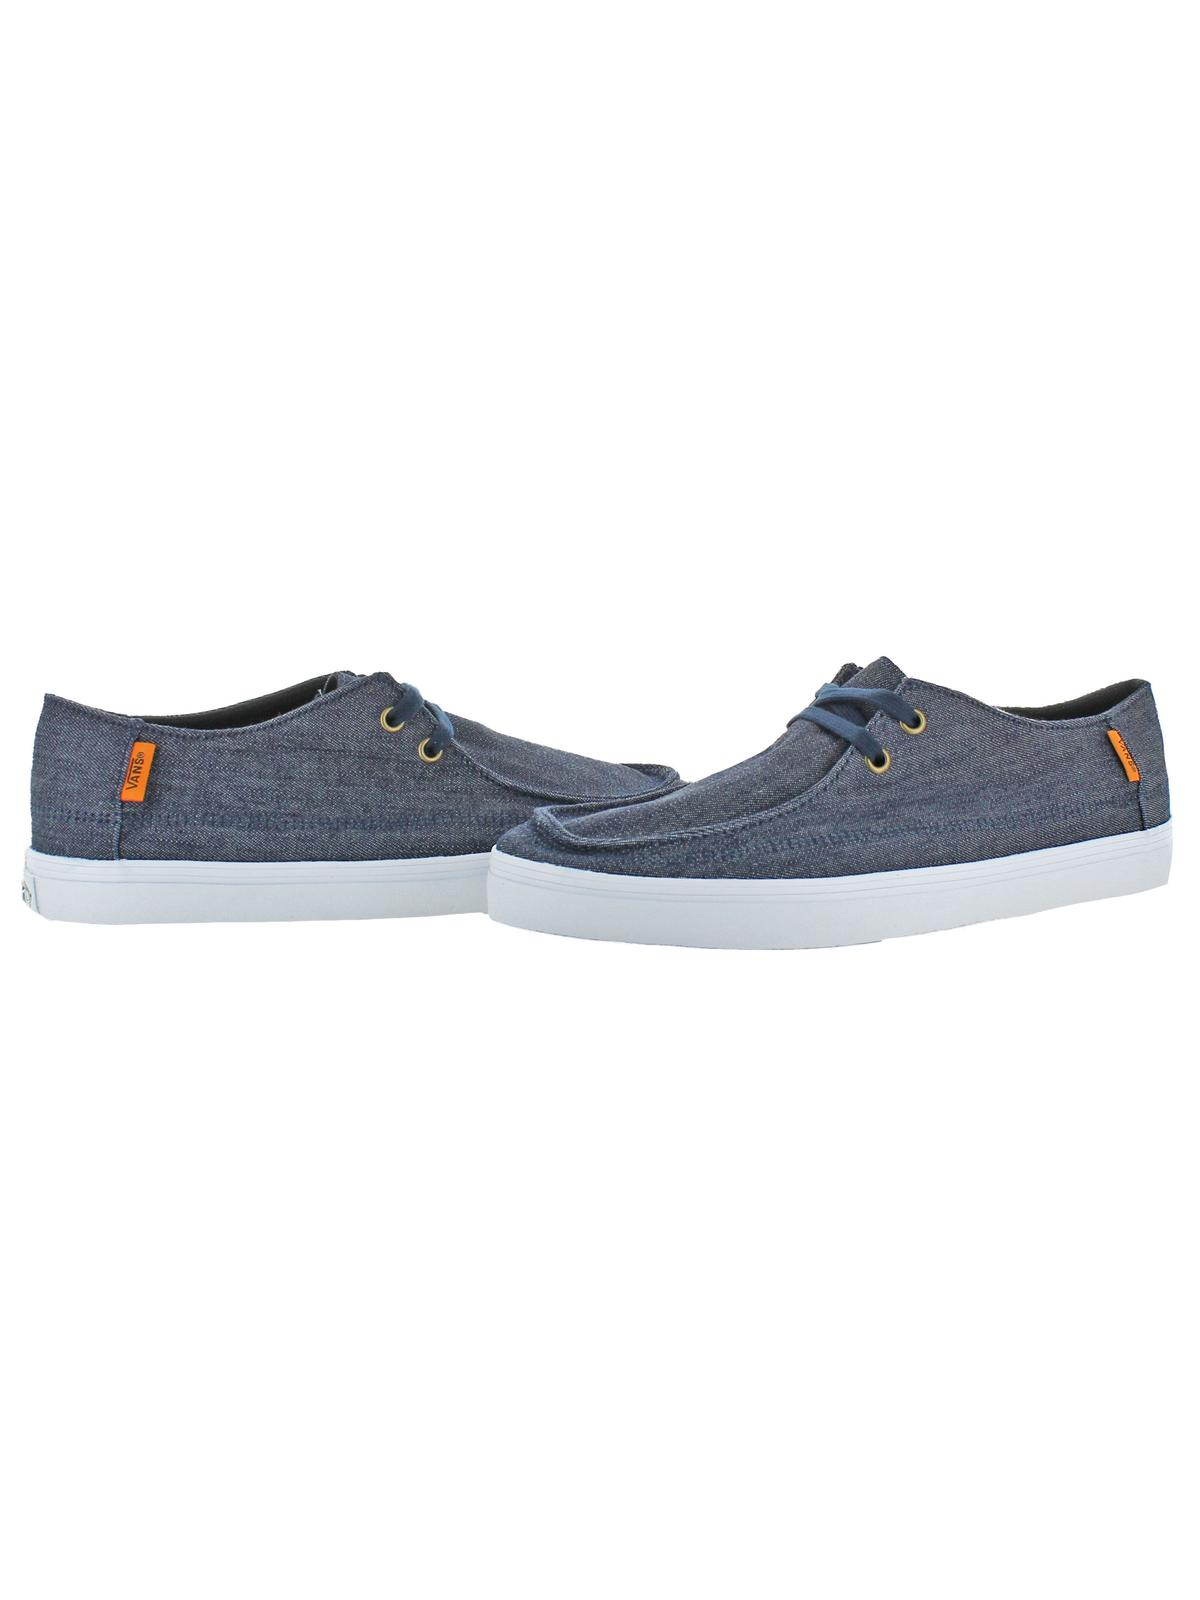 3bcd06c8470419 Vans - Vans Mens Rata Vulc SF Canvas Ultra Cush Skate Shoes - Walmart.com